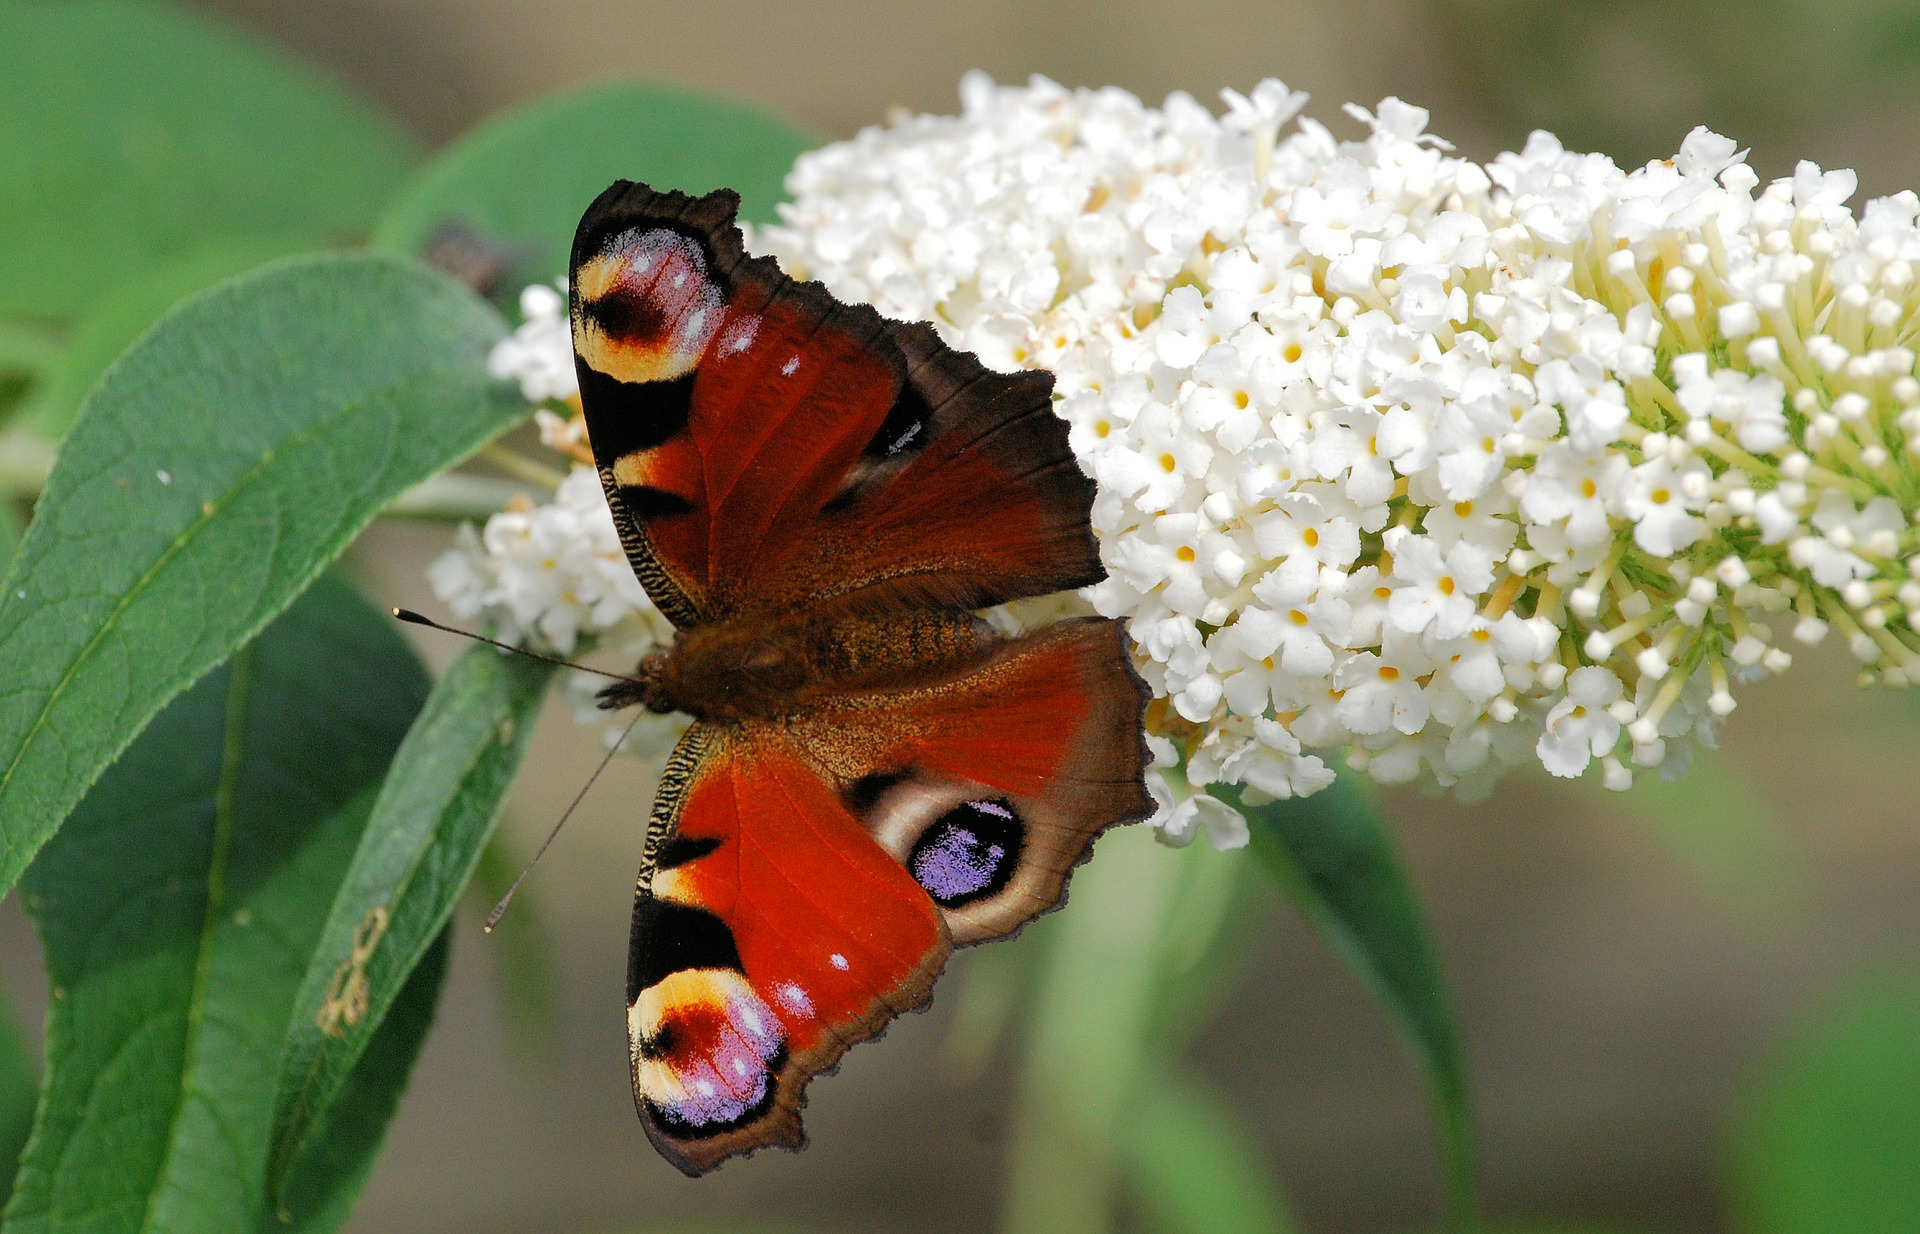 peacock-butterfly-345898_1920